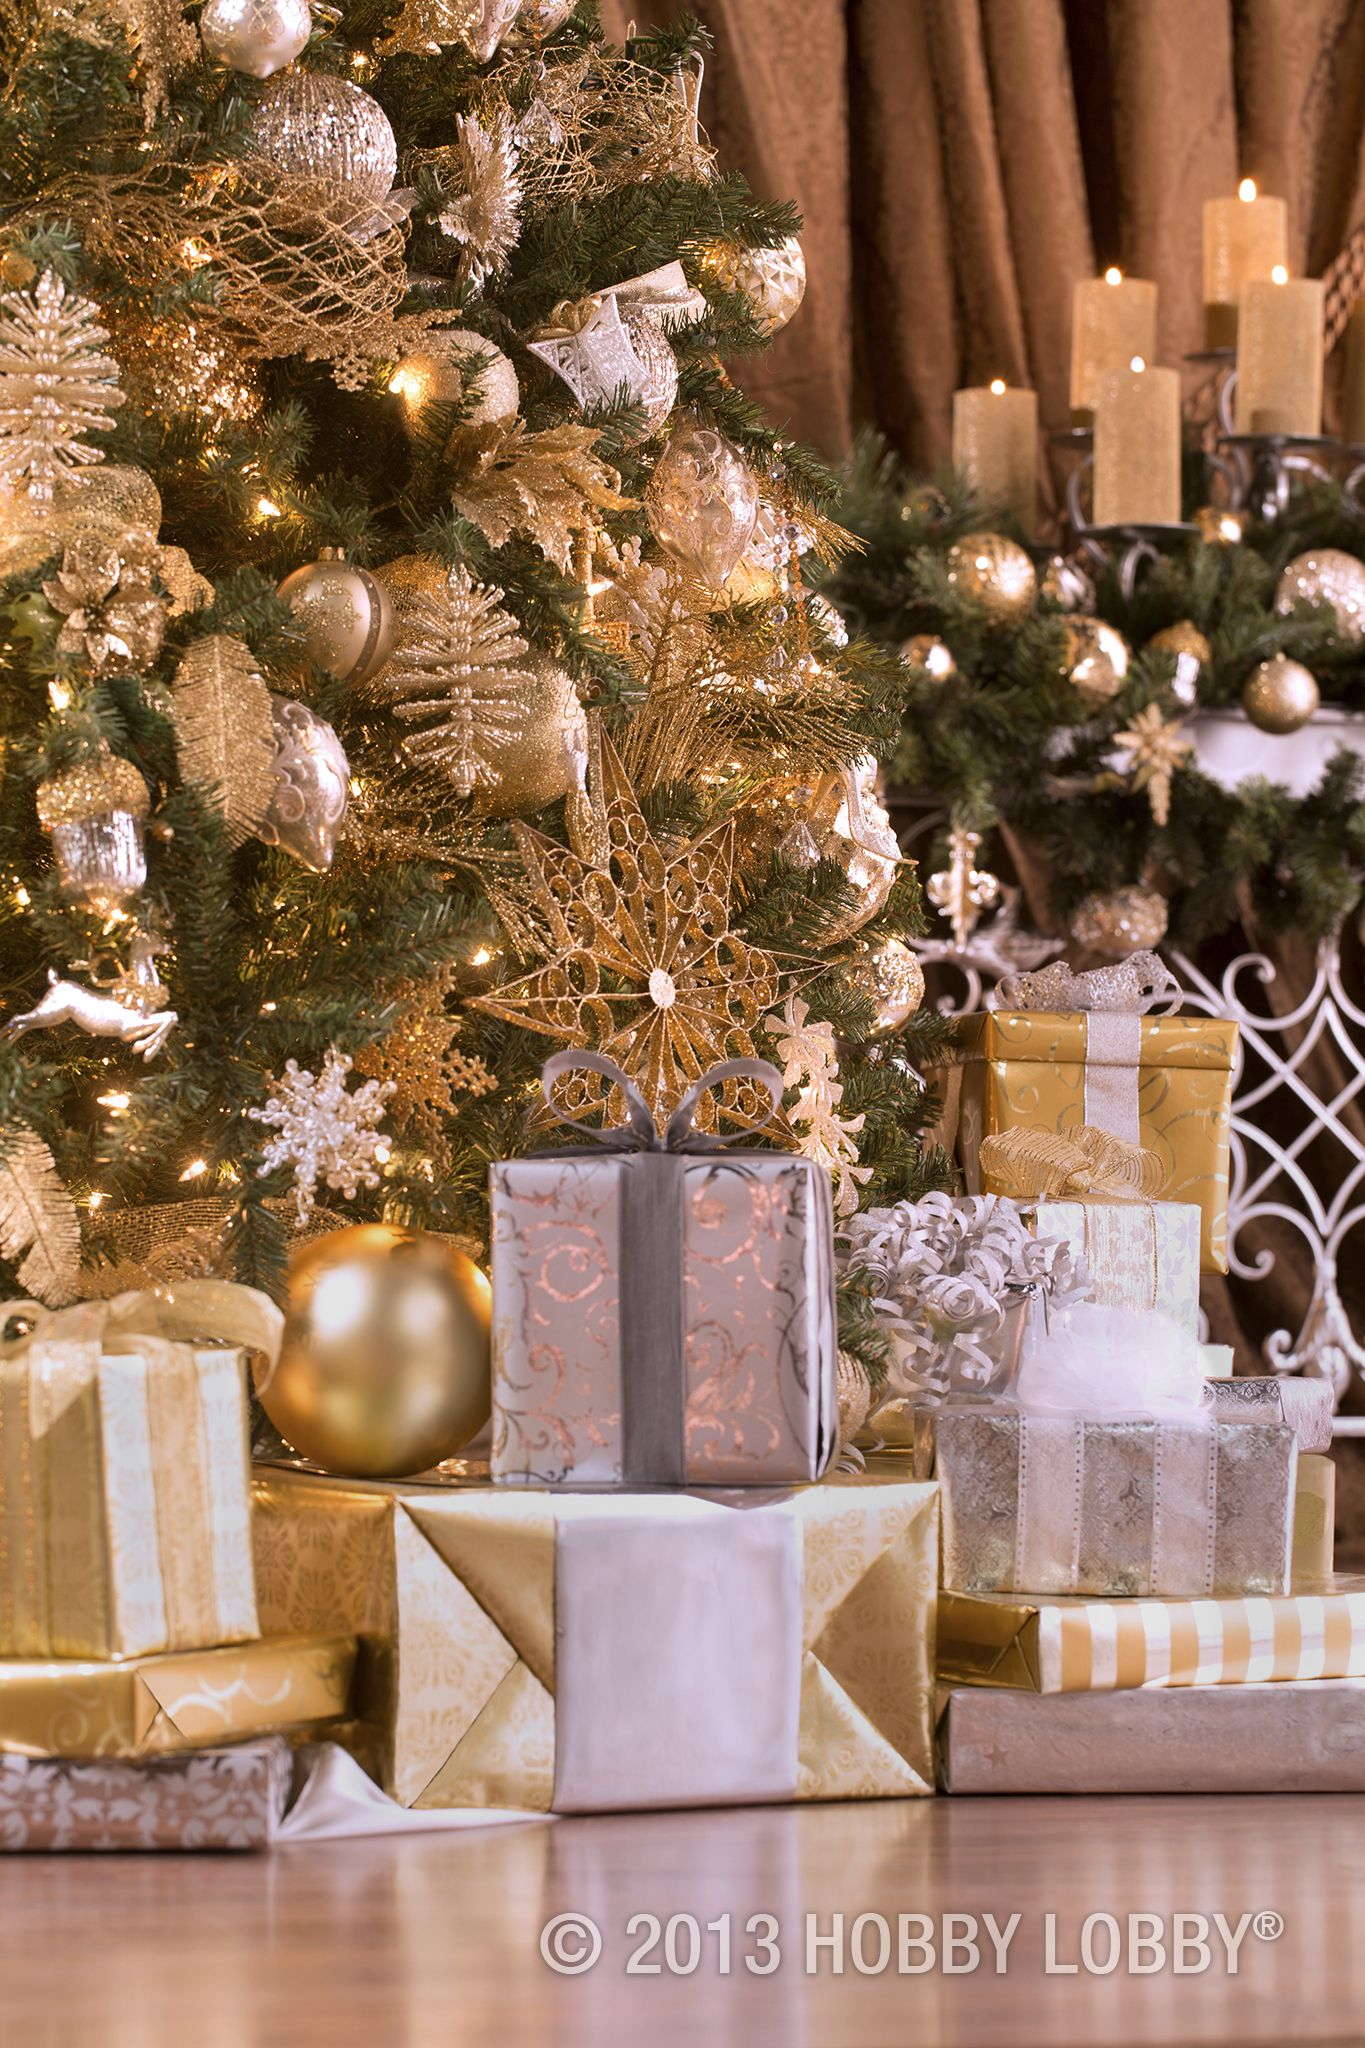 Gift Boxes Wrapped Under The Christmas Tree Stock Image ... |Wrapped Christmas Presents Under The Tree